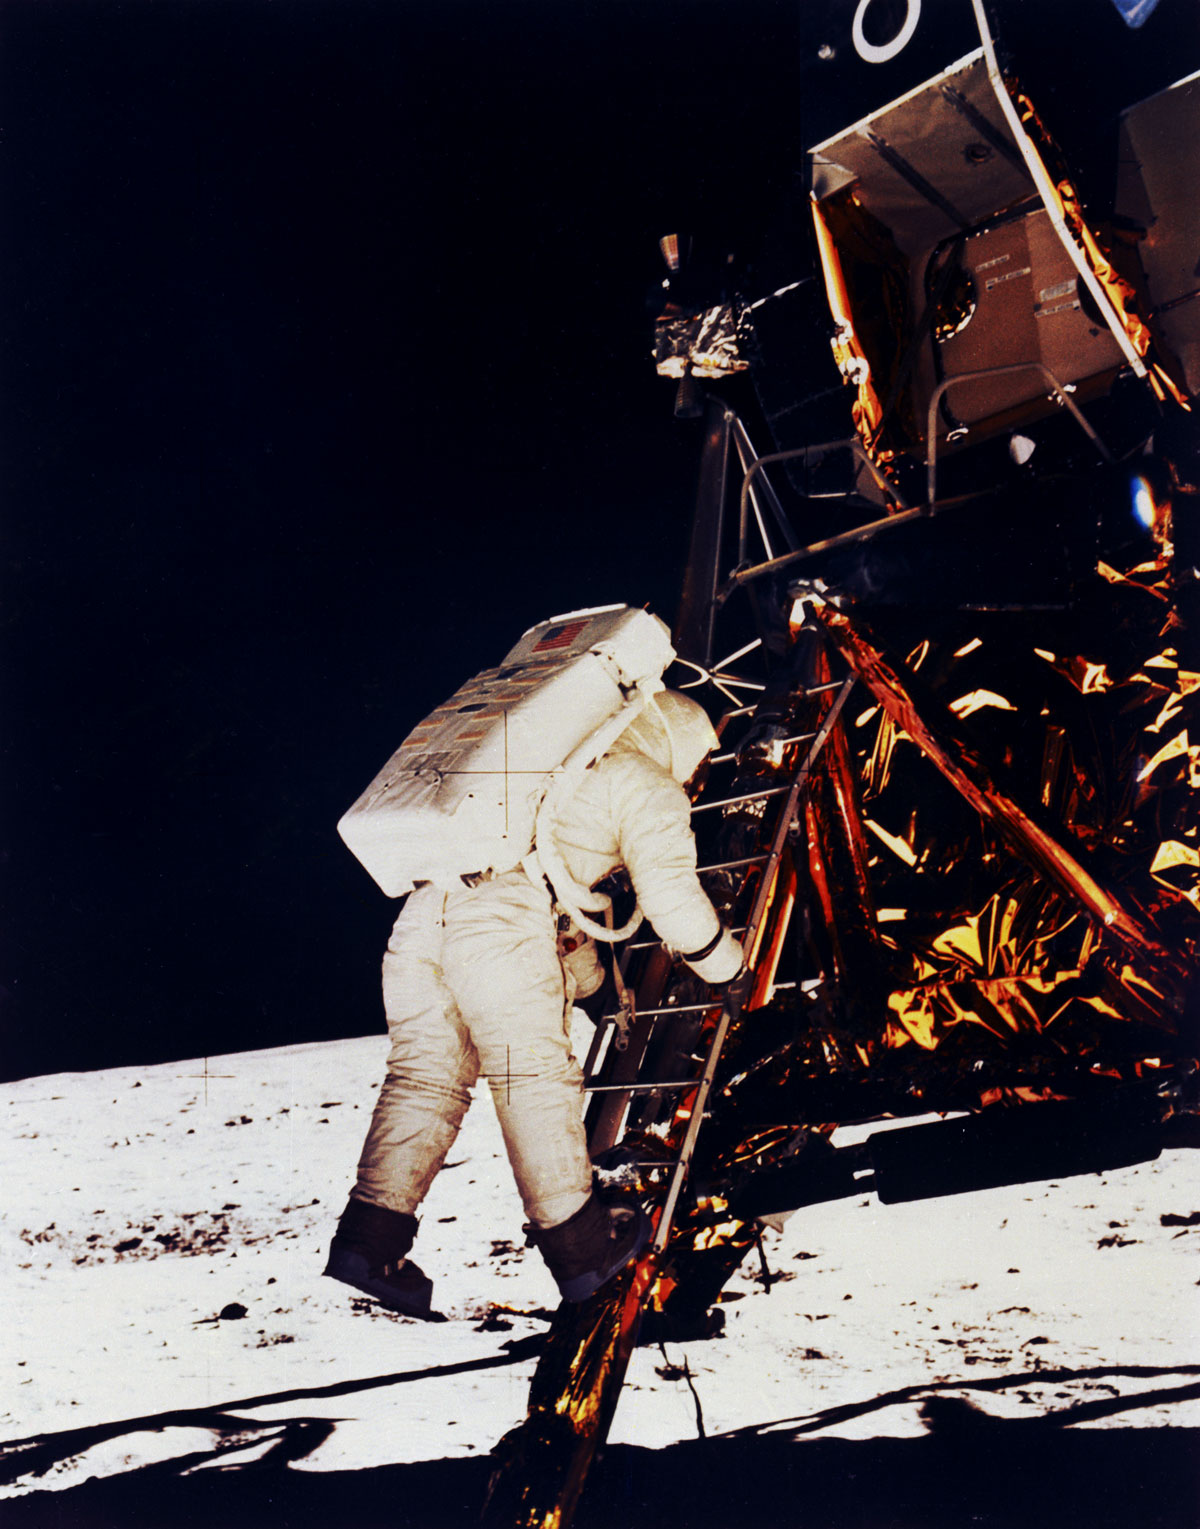 apollo 11 mission landing on the moon - photo #17